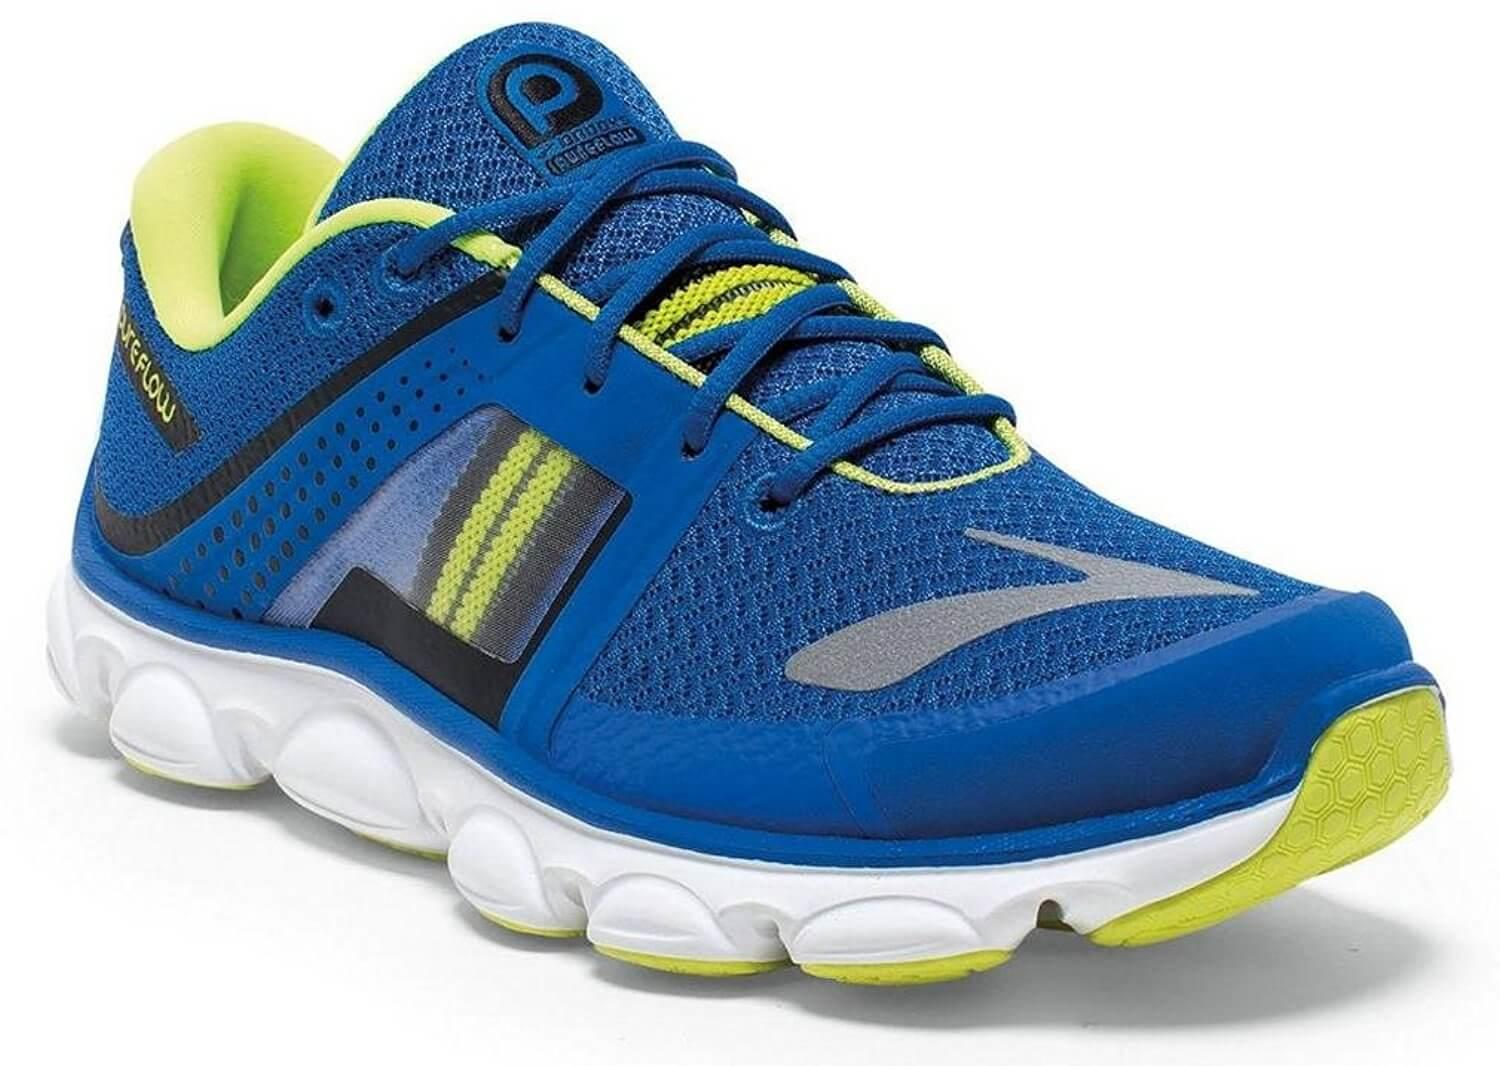 10 Best Girls Running Shoes Reviewed in 2018 | RunnerClick